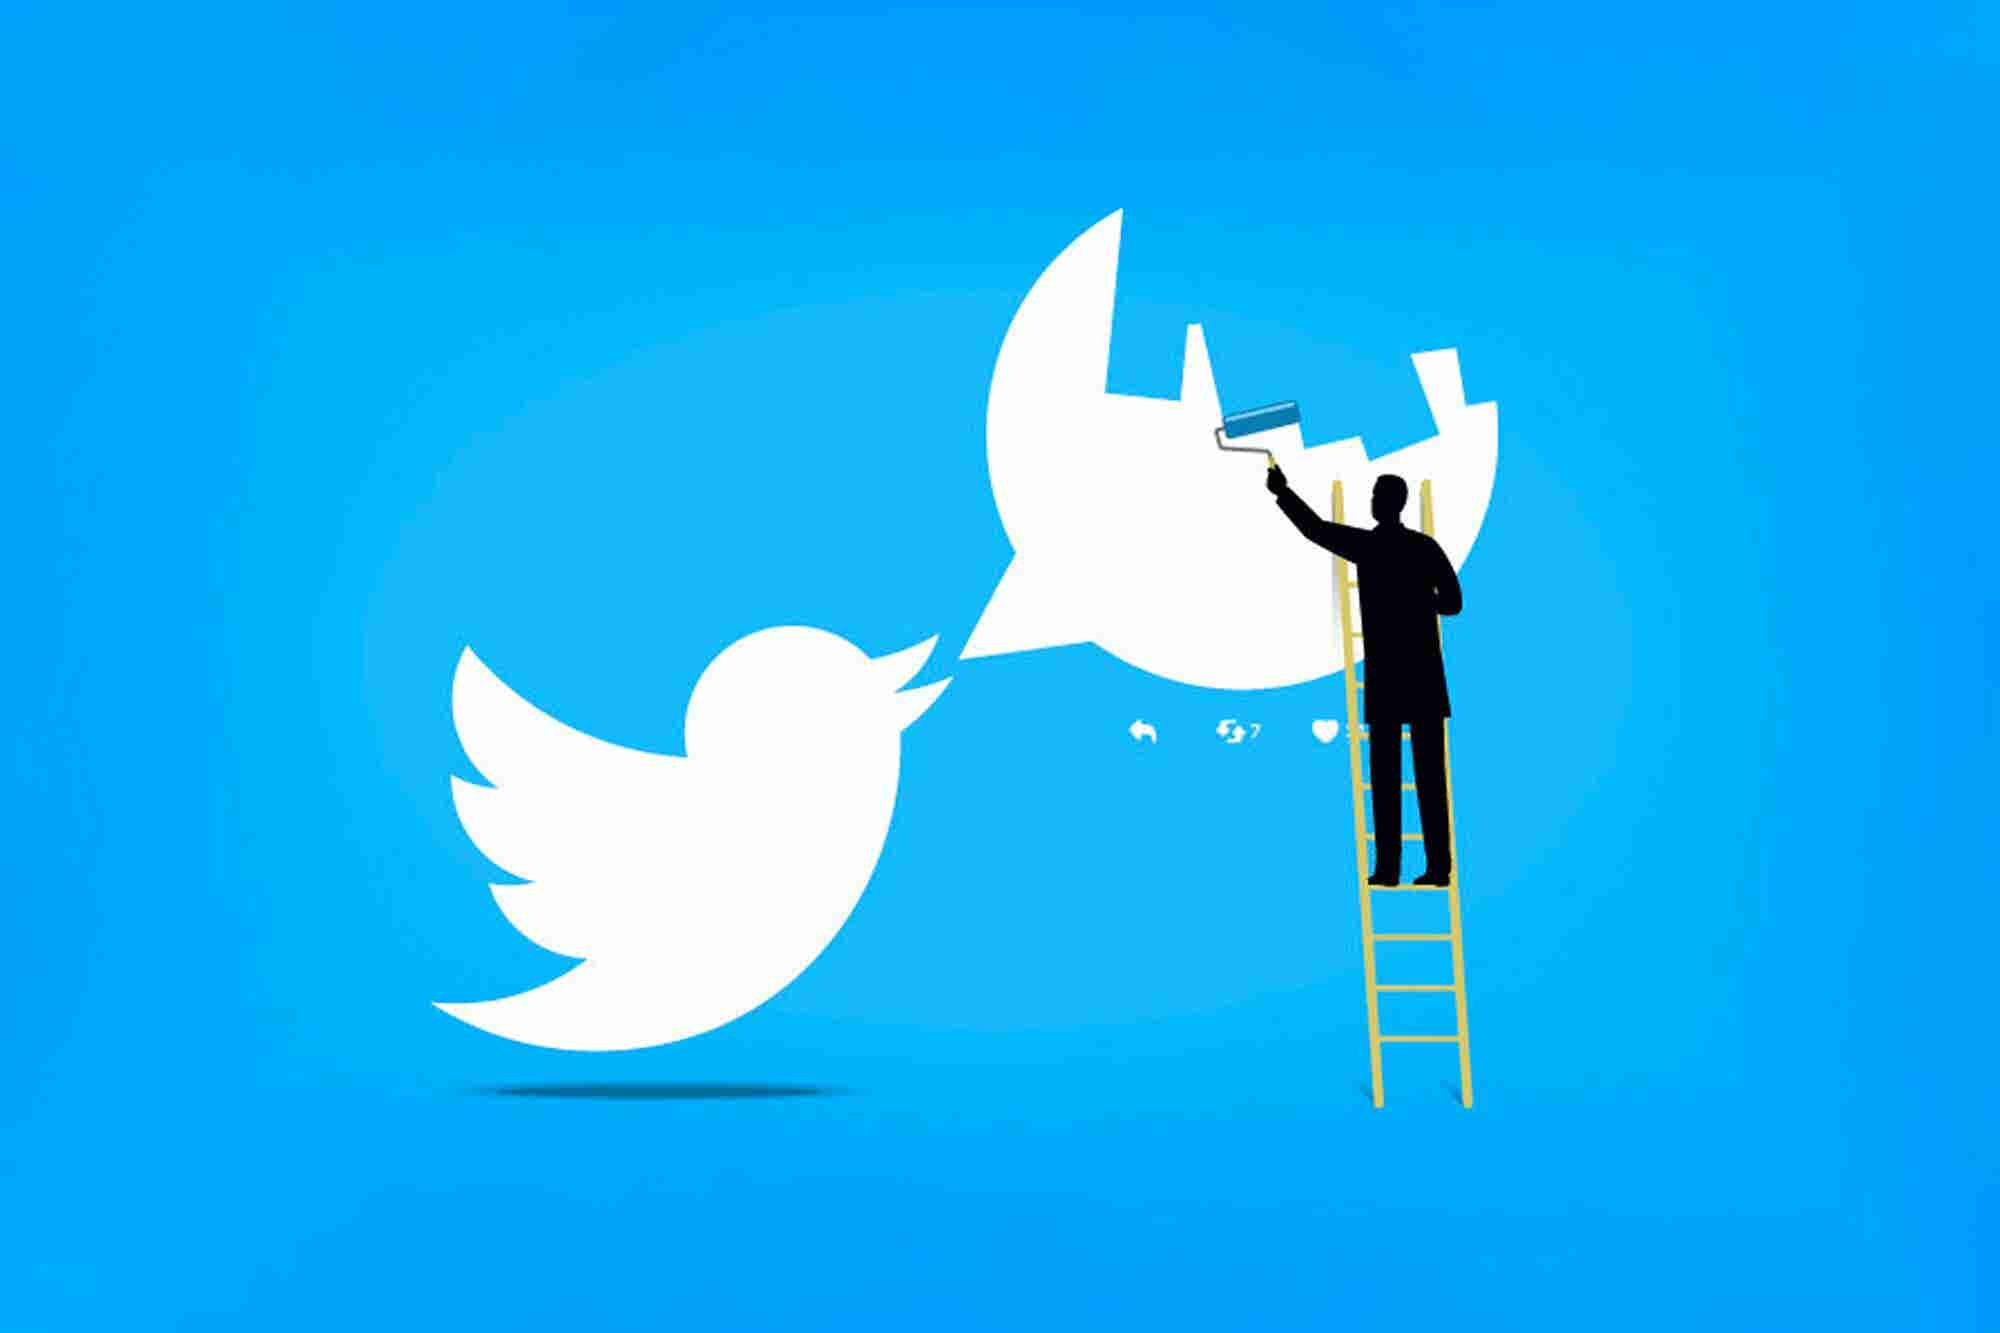 Twitter: Instead of Tweet Edits, How About 'Clarifications'?